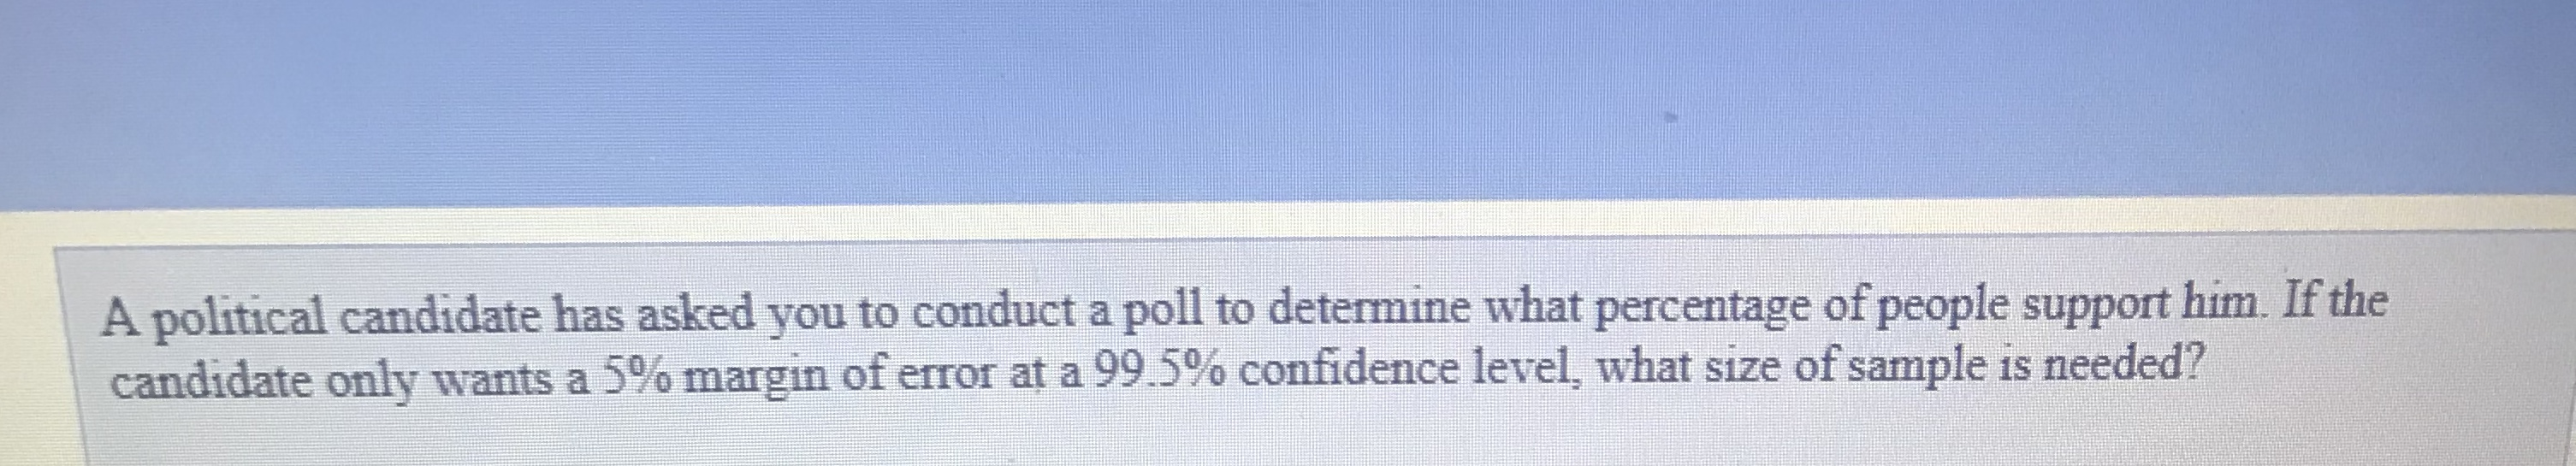 A political candidate has asked you to conduct a poll to determine what percentage of people support him. If the candidate only wants a 5% margin of error at a 99.5% confidence level, what size of sample is needed?